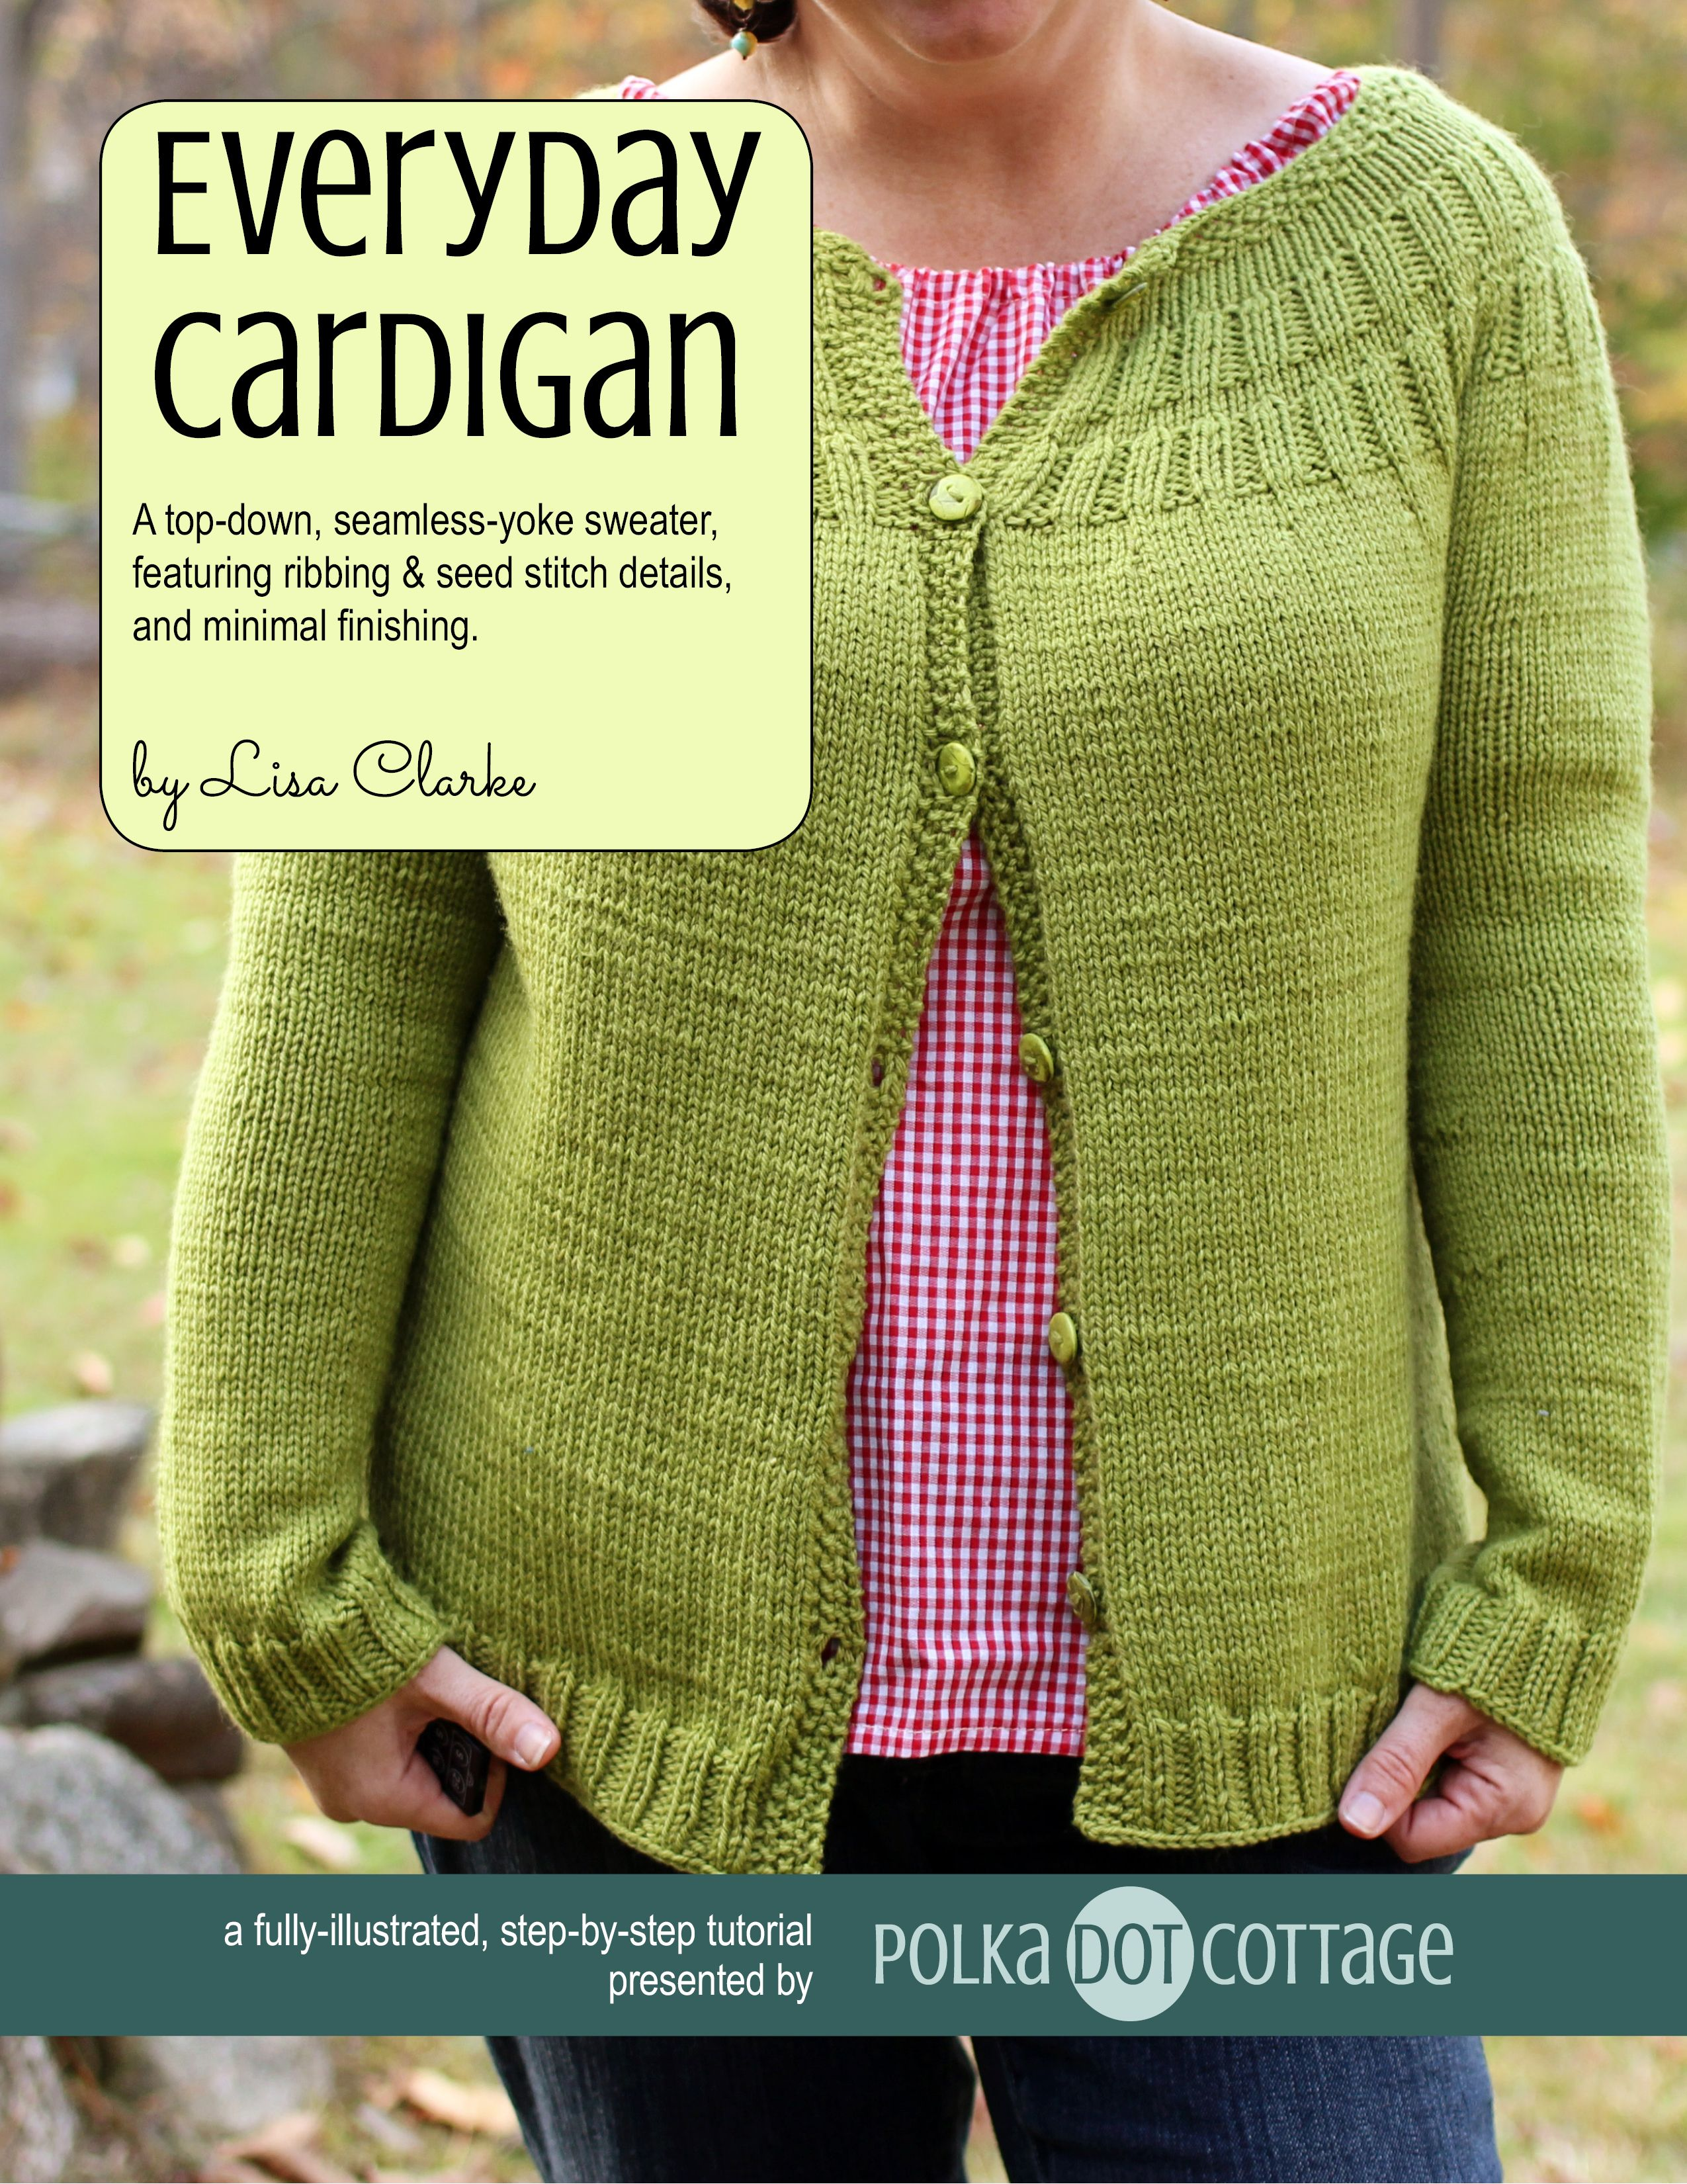 Knit an everyday cardigan a top down seamless yoke sweater knit an everyday cardigan a top down seamless yoke sweaterfeaturing bankloansurffo Images